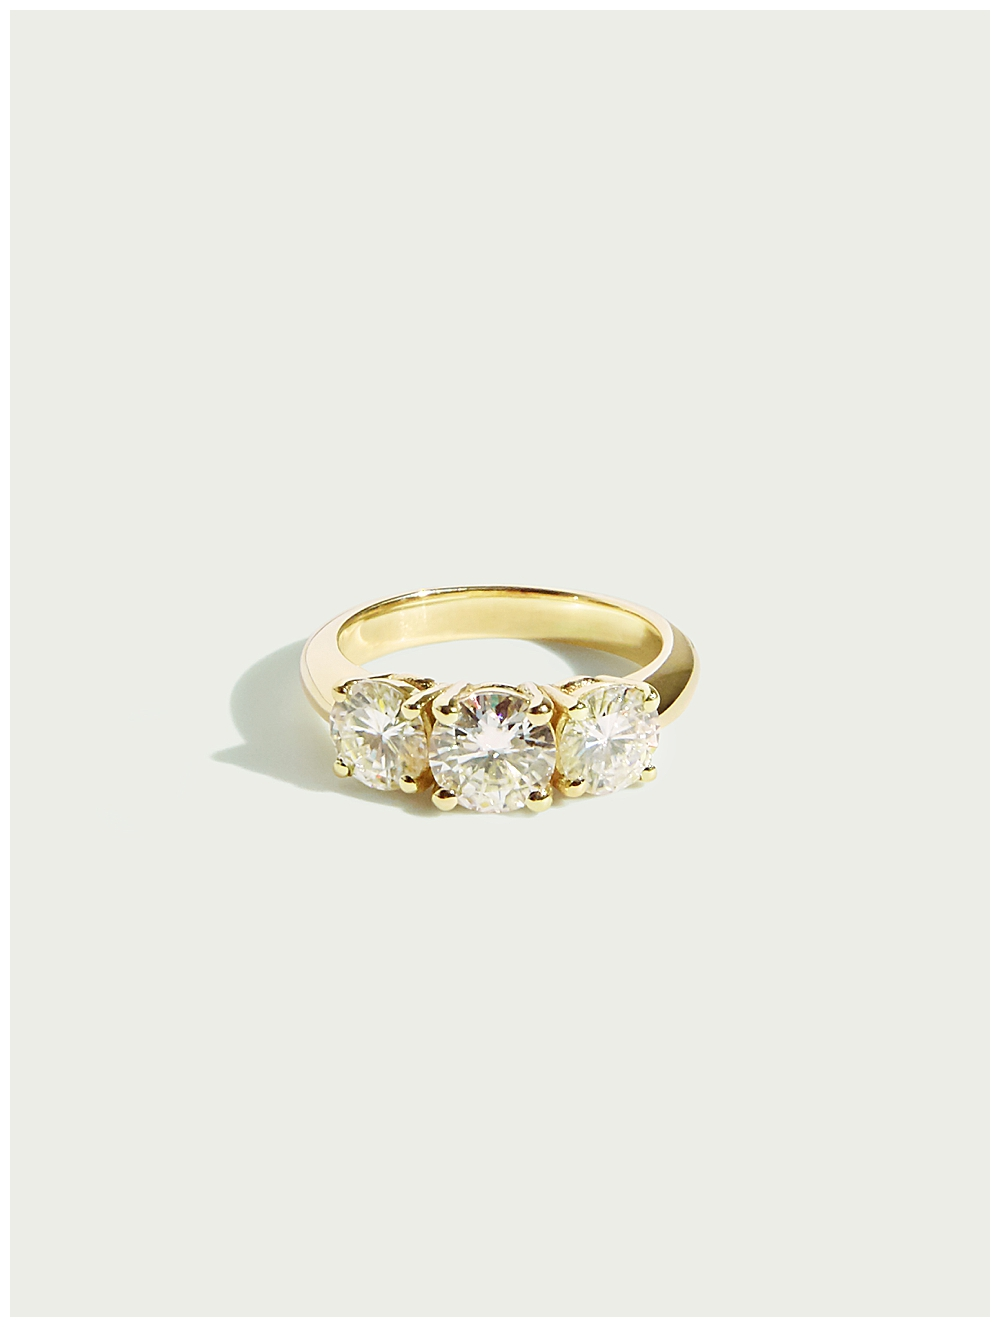 unisex-engagement-rings-7